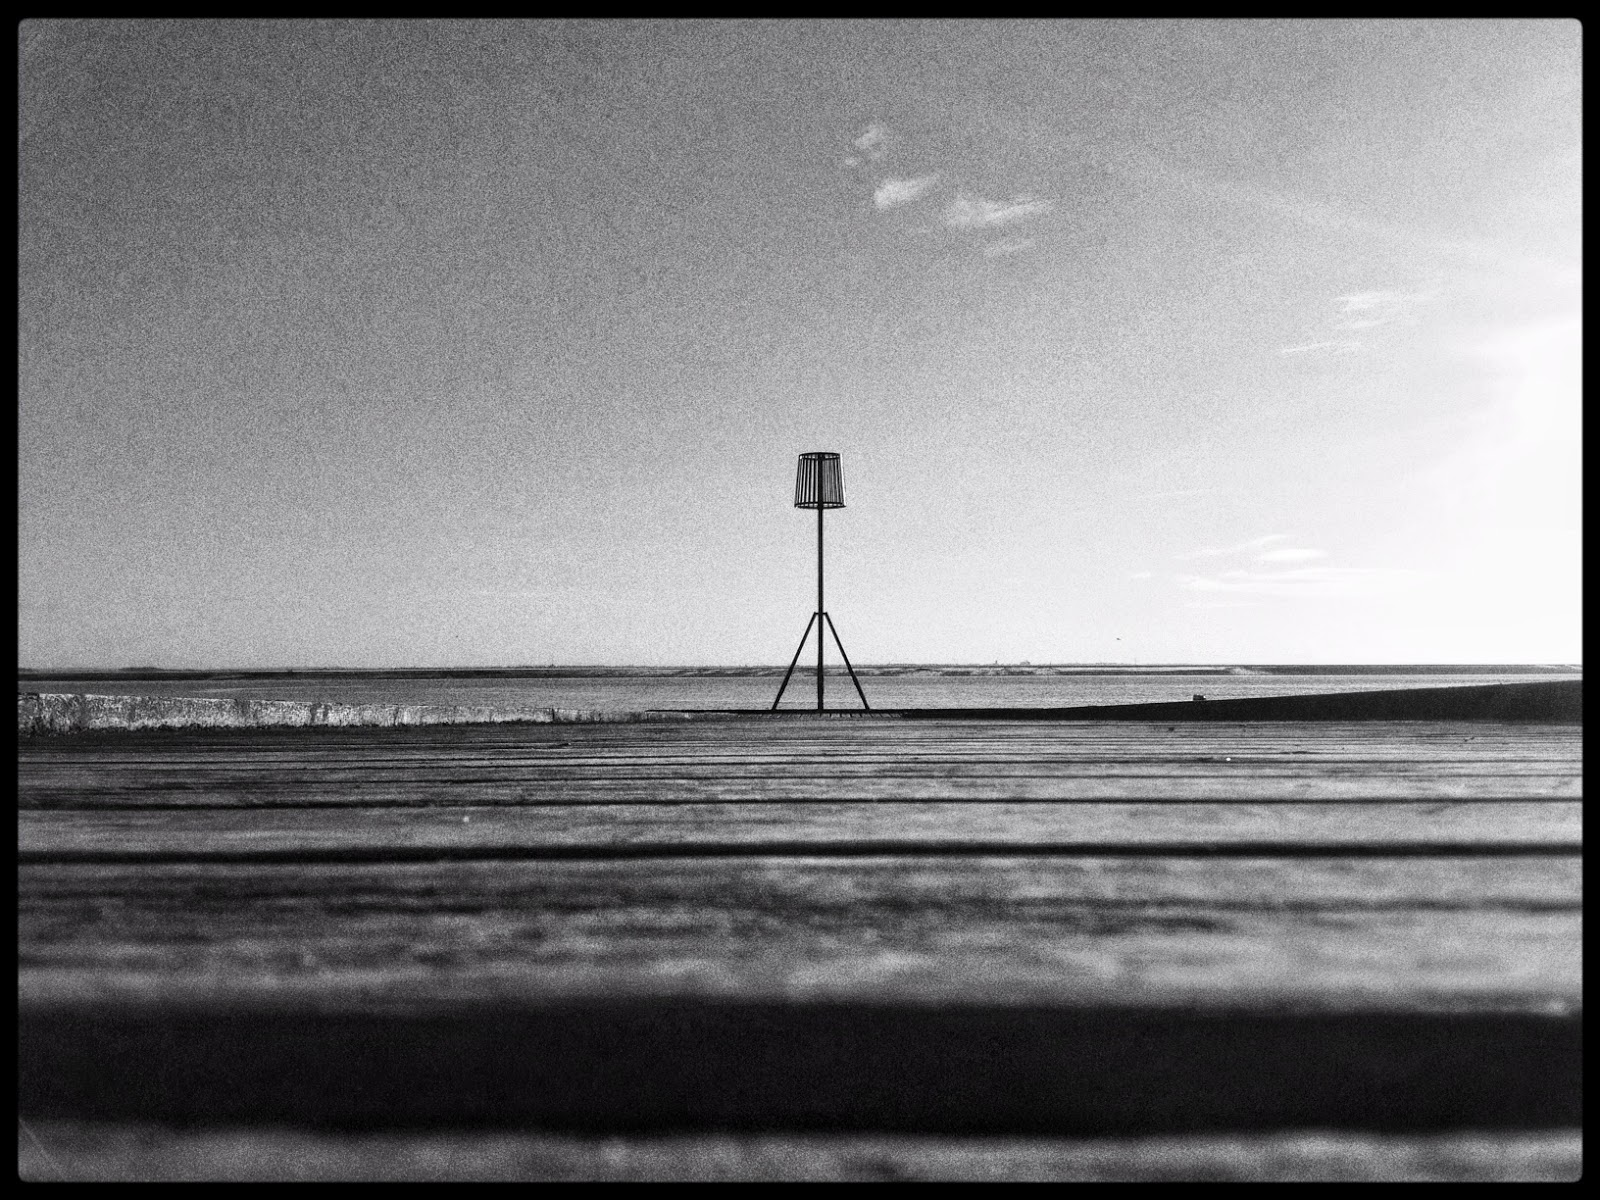 Lytham life boat jetty pier esturay beach sea sand black and white